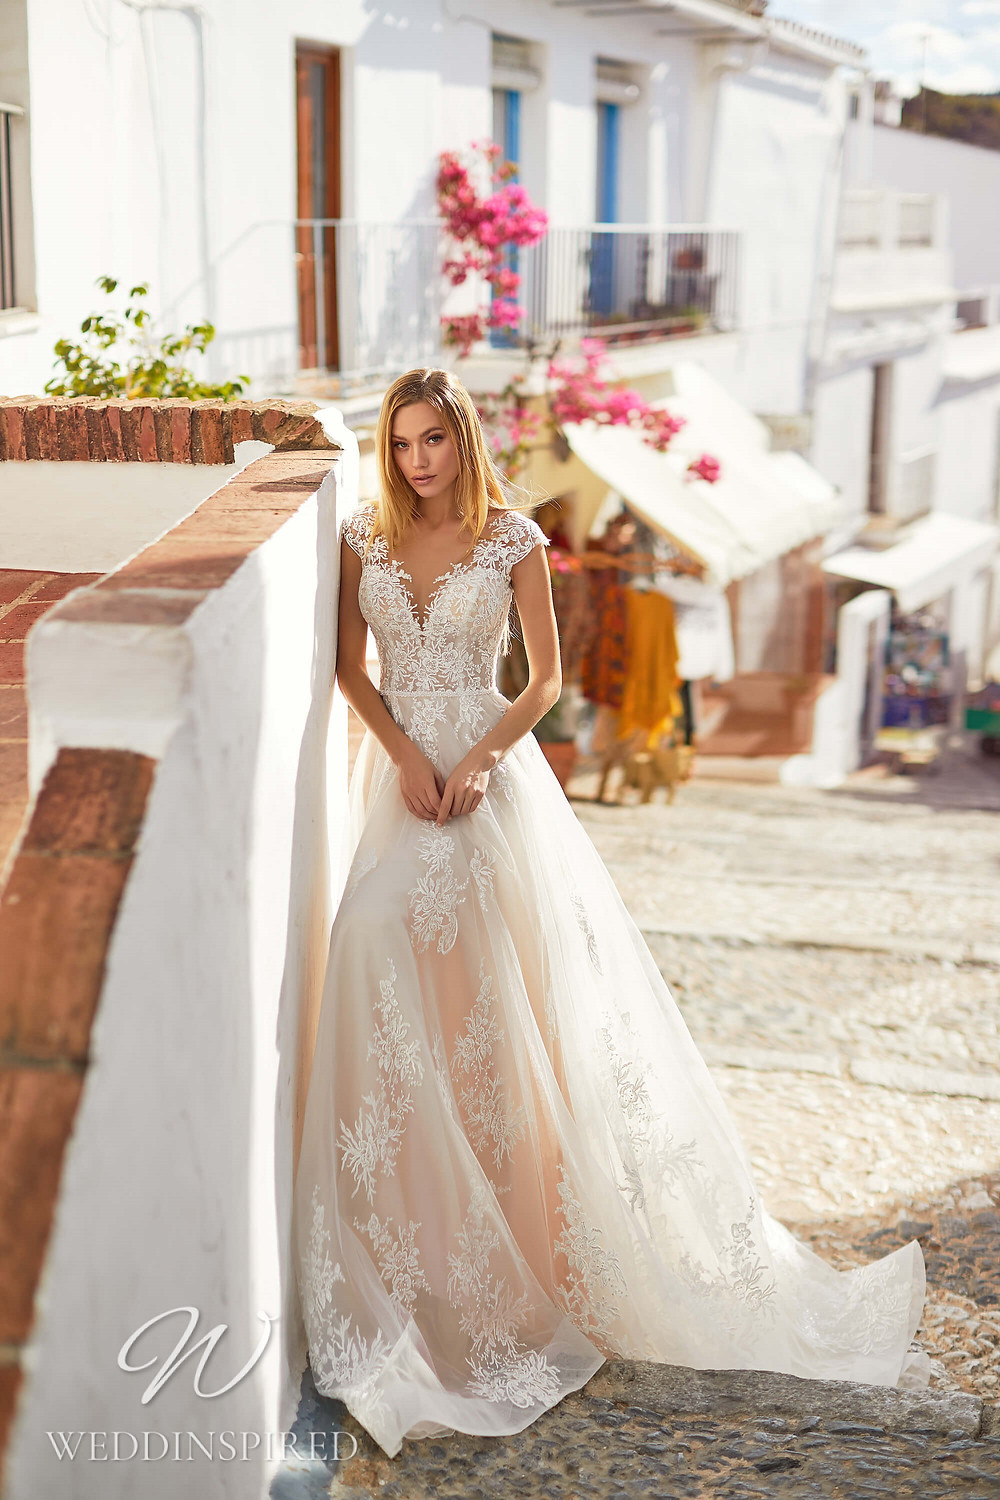 An Essential by Lussano 2021 lace and tulle A-line wedding dress with cap sleeves